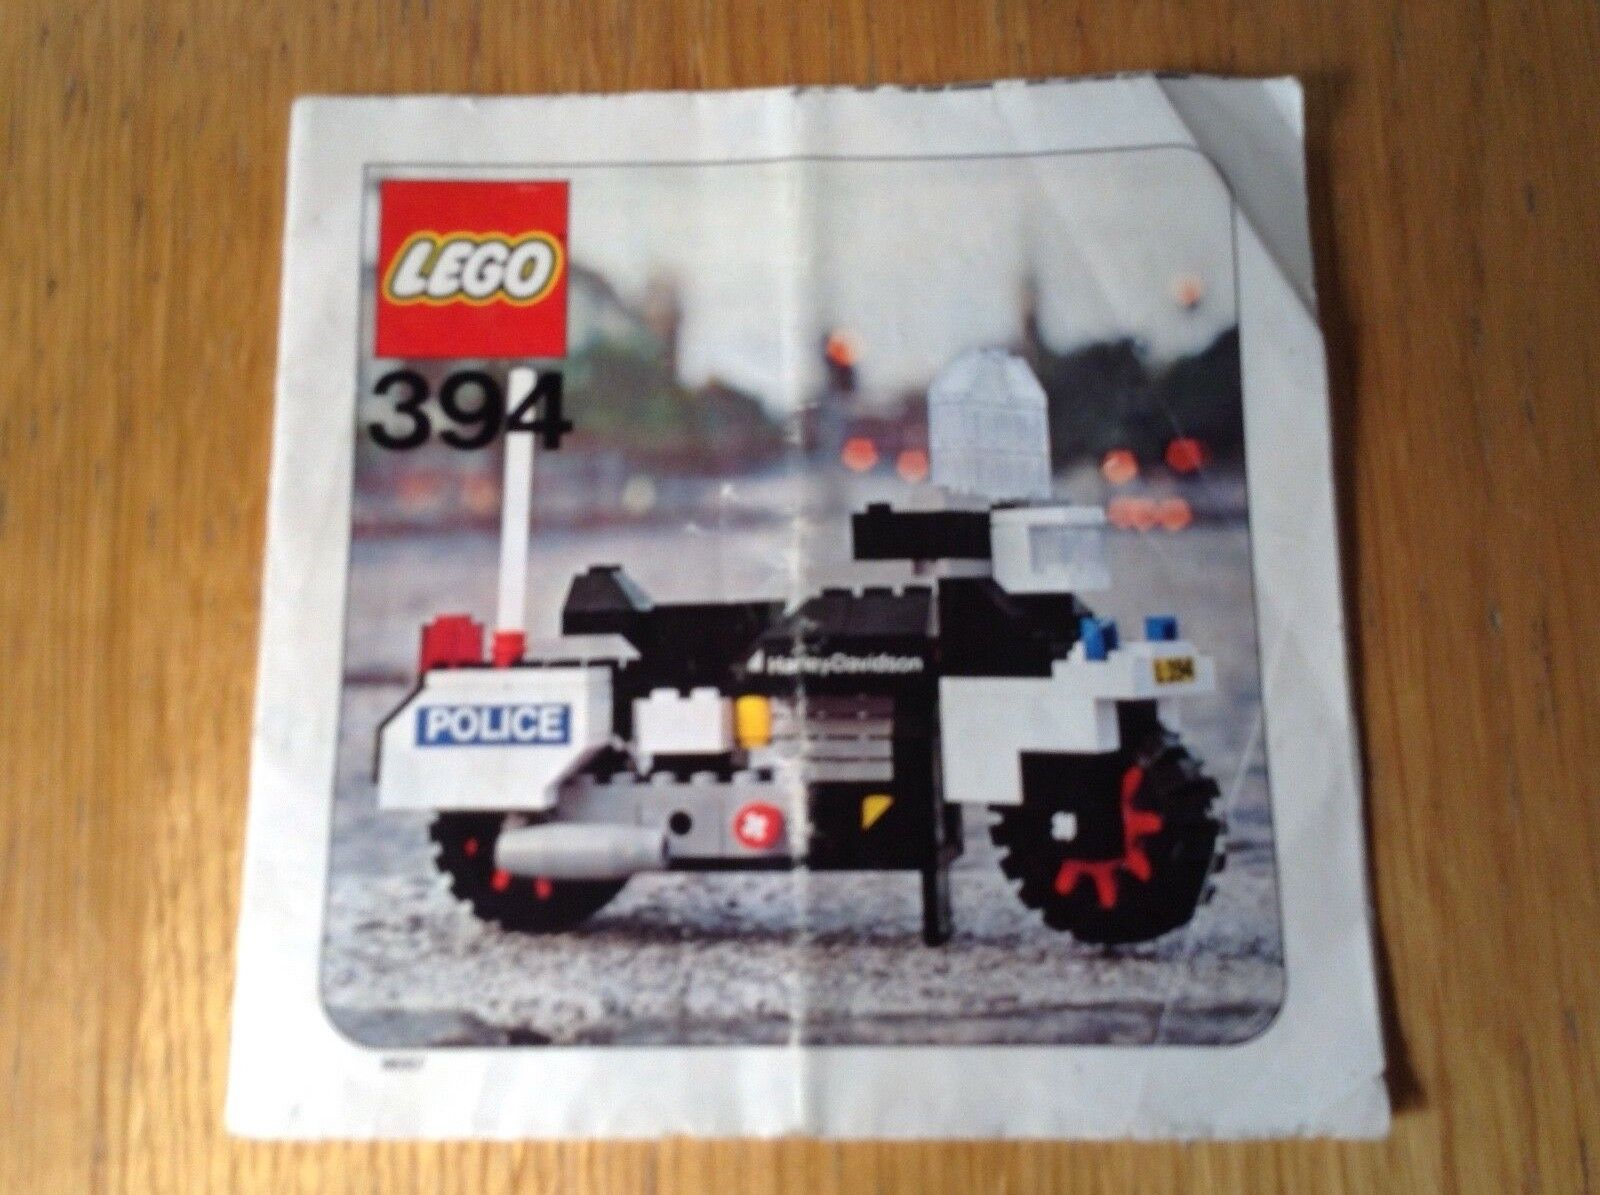 Lego Hobby Set 394 Harley-Davidson from 1976 - instructions only - free postage